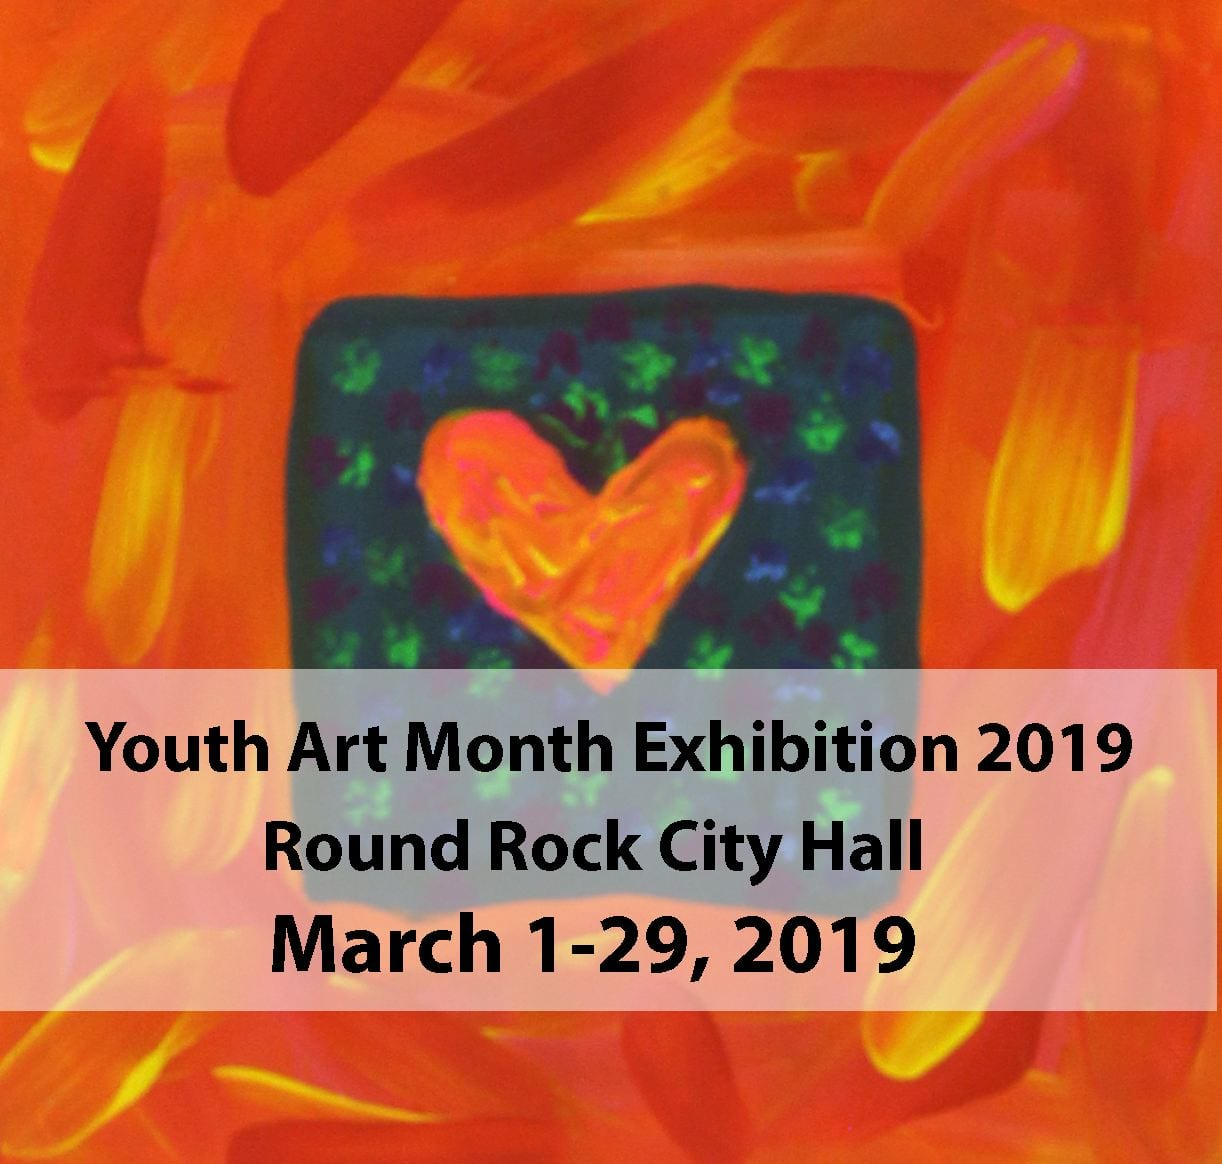 Youth Art Month Exhibition showcased at Round Rock City Hall